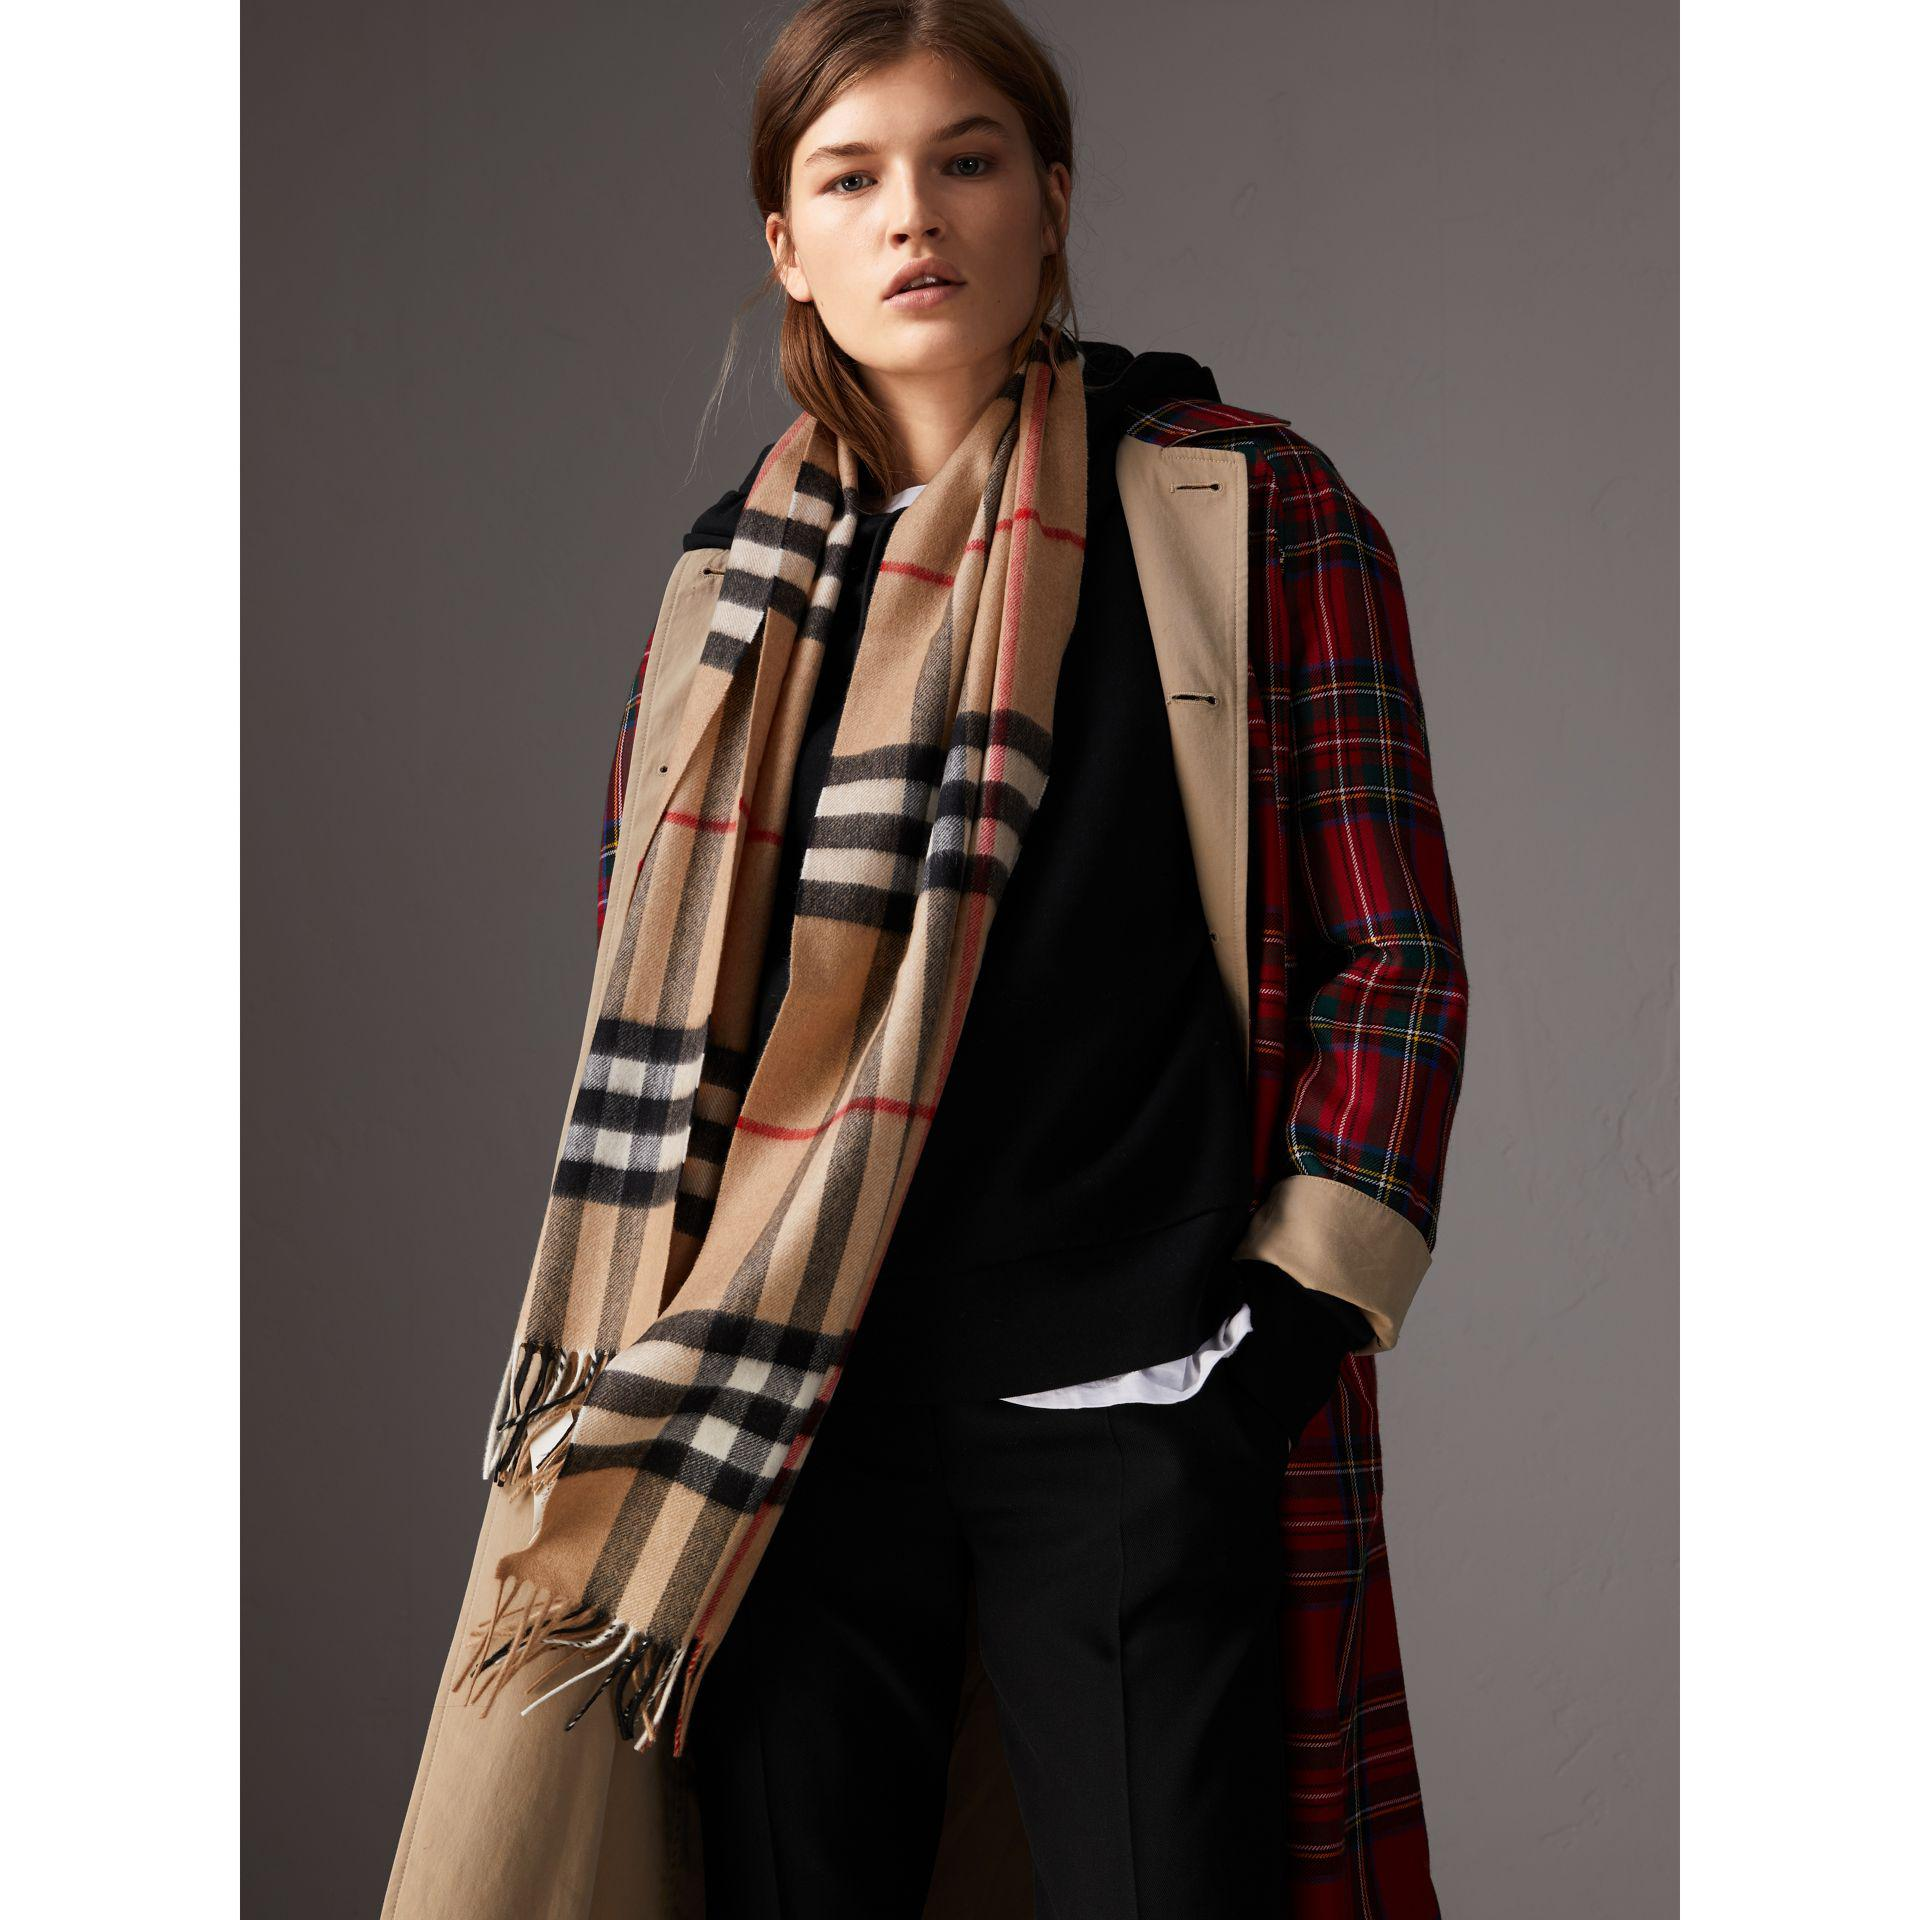 7e9c6eb8955ea ... real burberry natural heritage check classic cashmere scarf lyst. view  fullscreen 07510 e7cd8